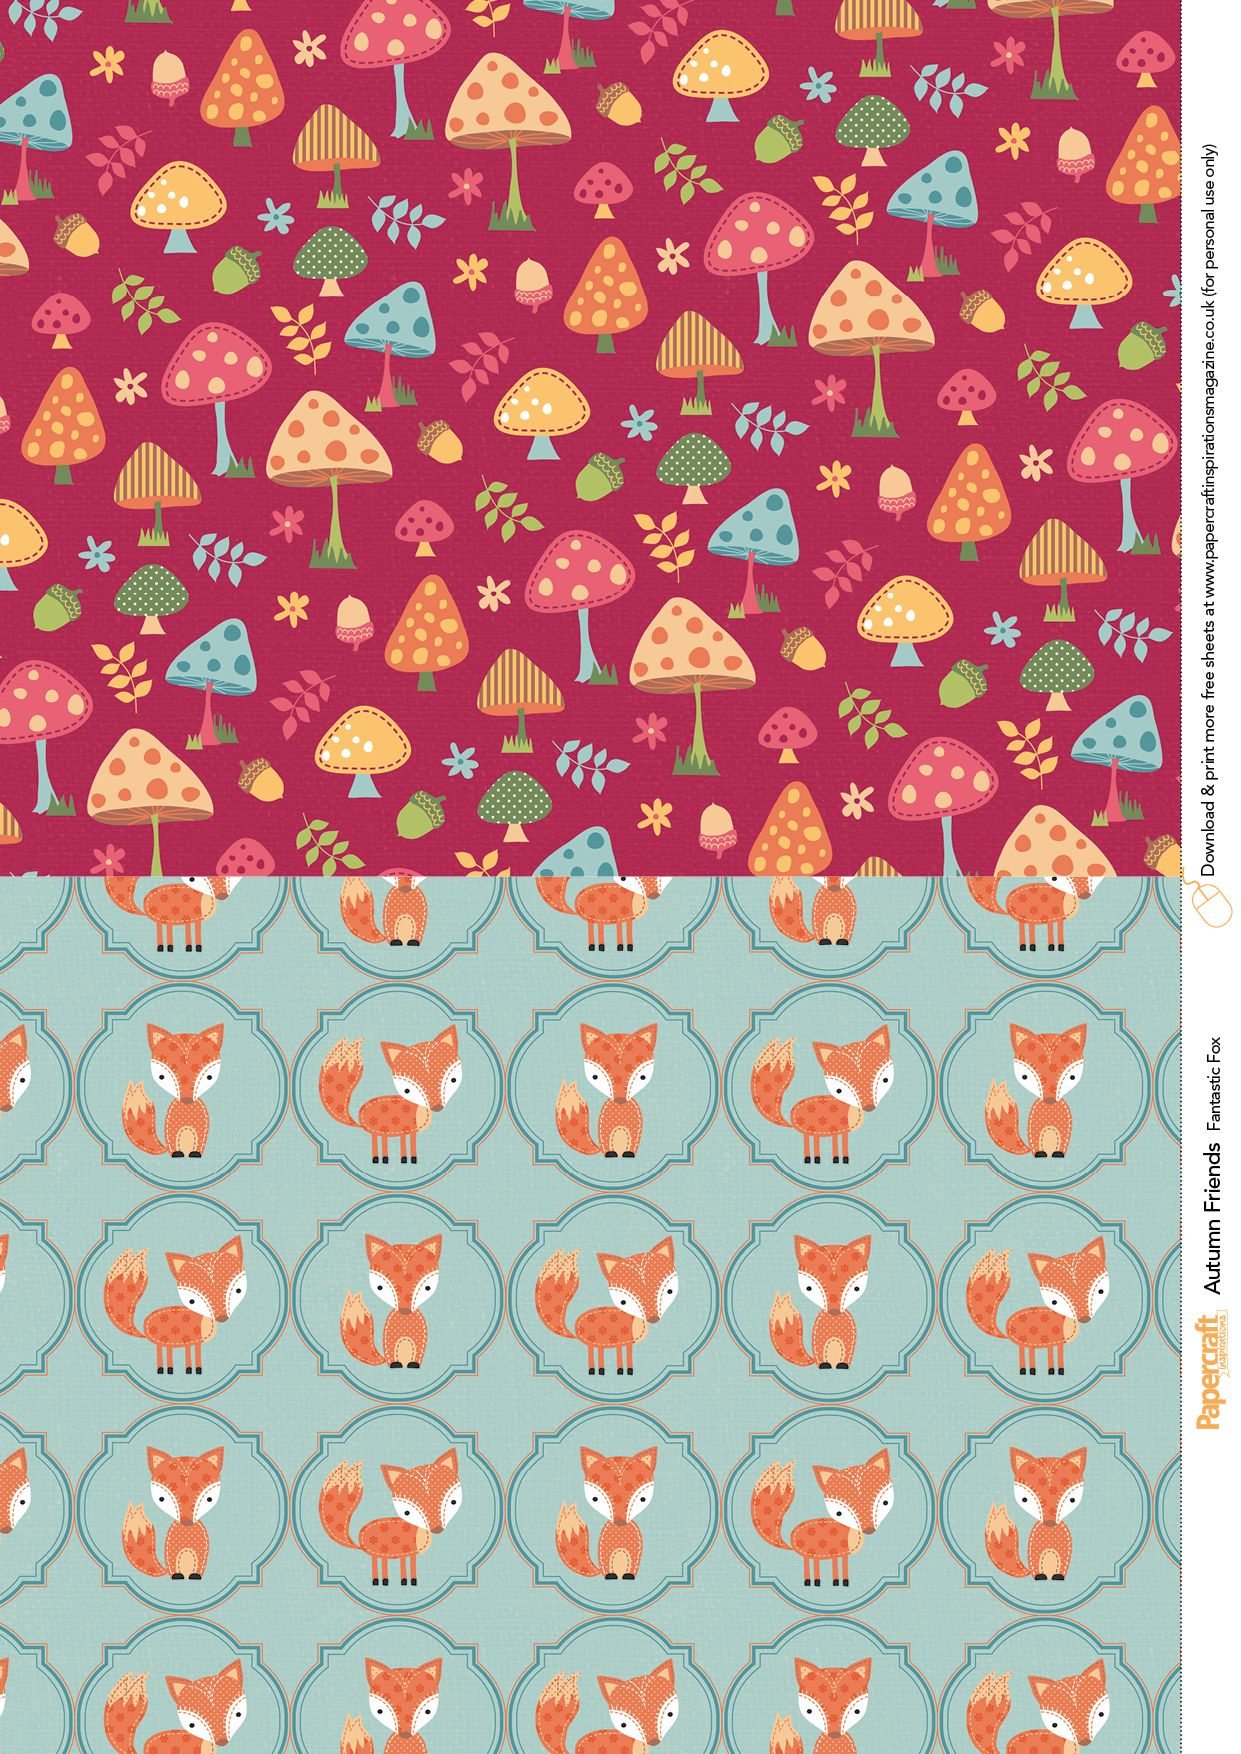 Get funky with these cute fox characters and mushroom papers get funky with these cute fox characters and mushroom papers download the digital papers free jeuxipadfo Choice Image